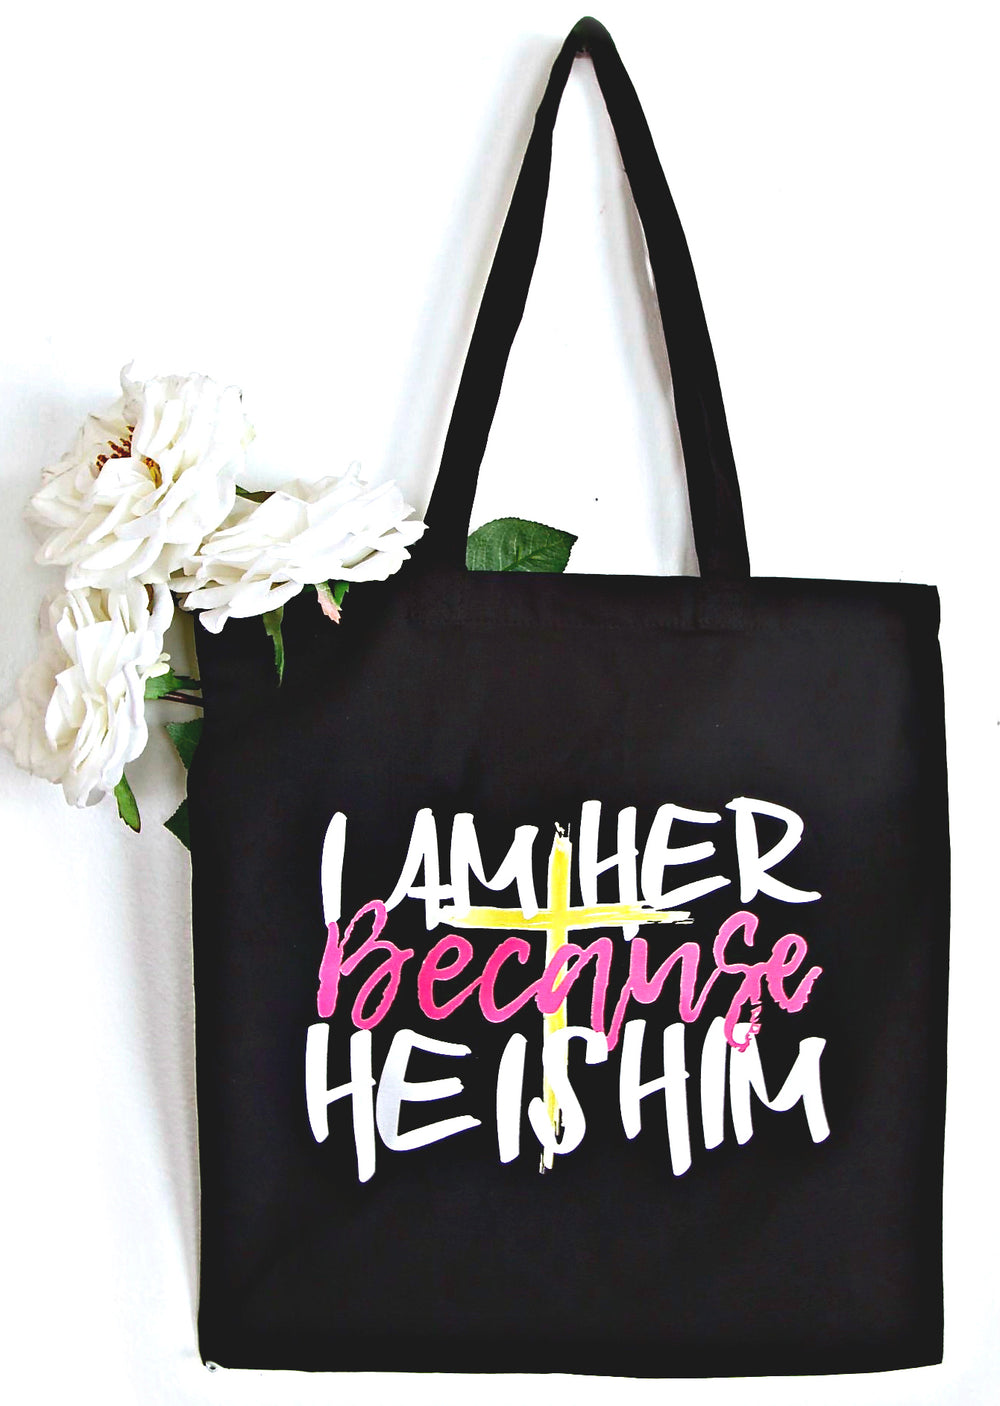 Because HE IS HIM - Canvas Tote Bag - I AM HER Apparel, LLC